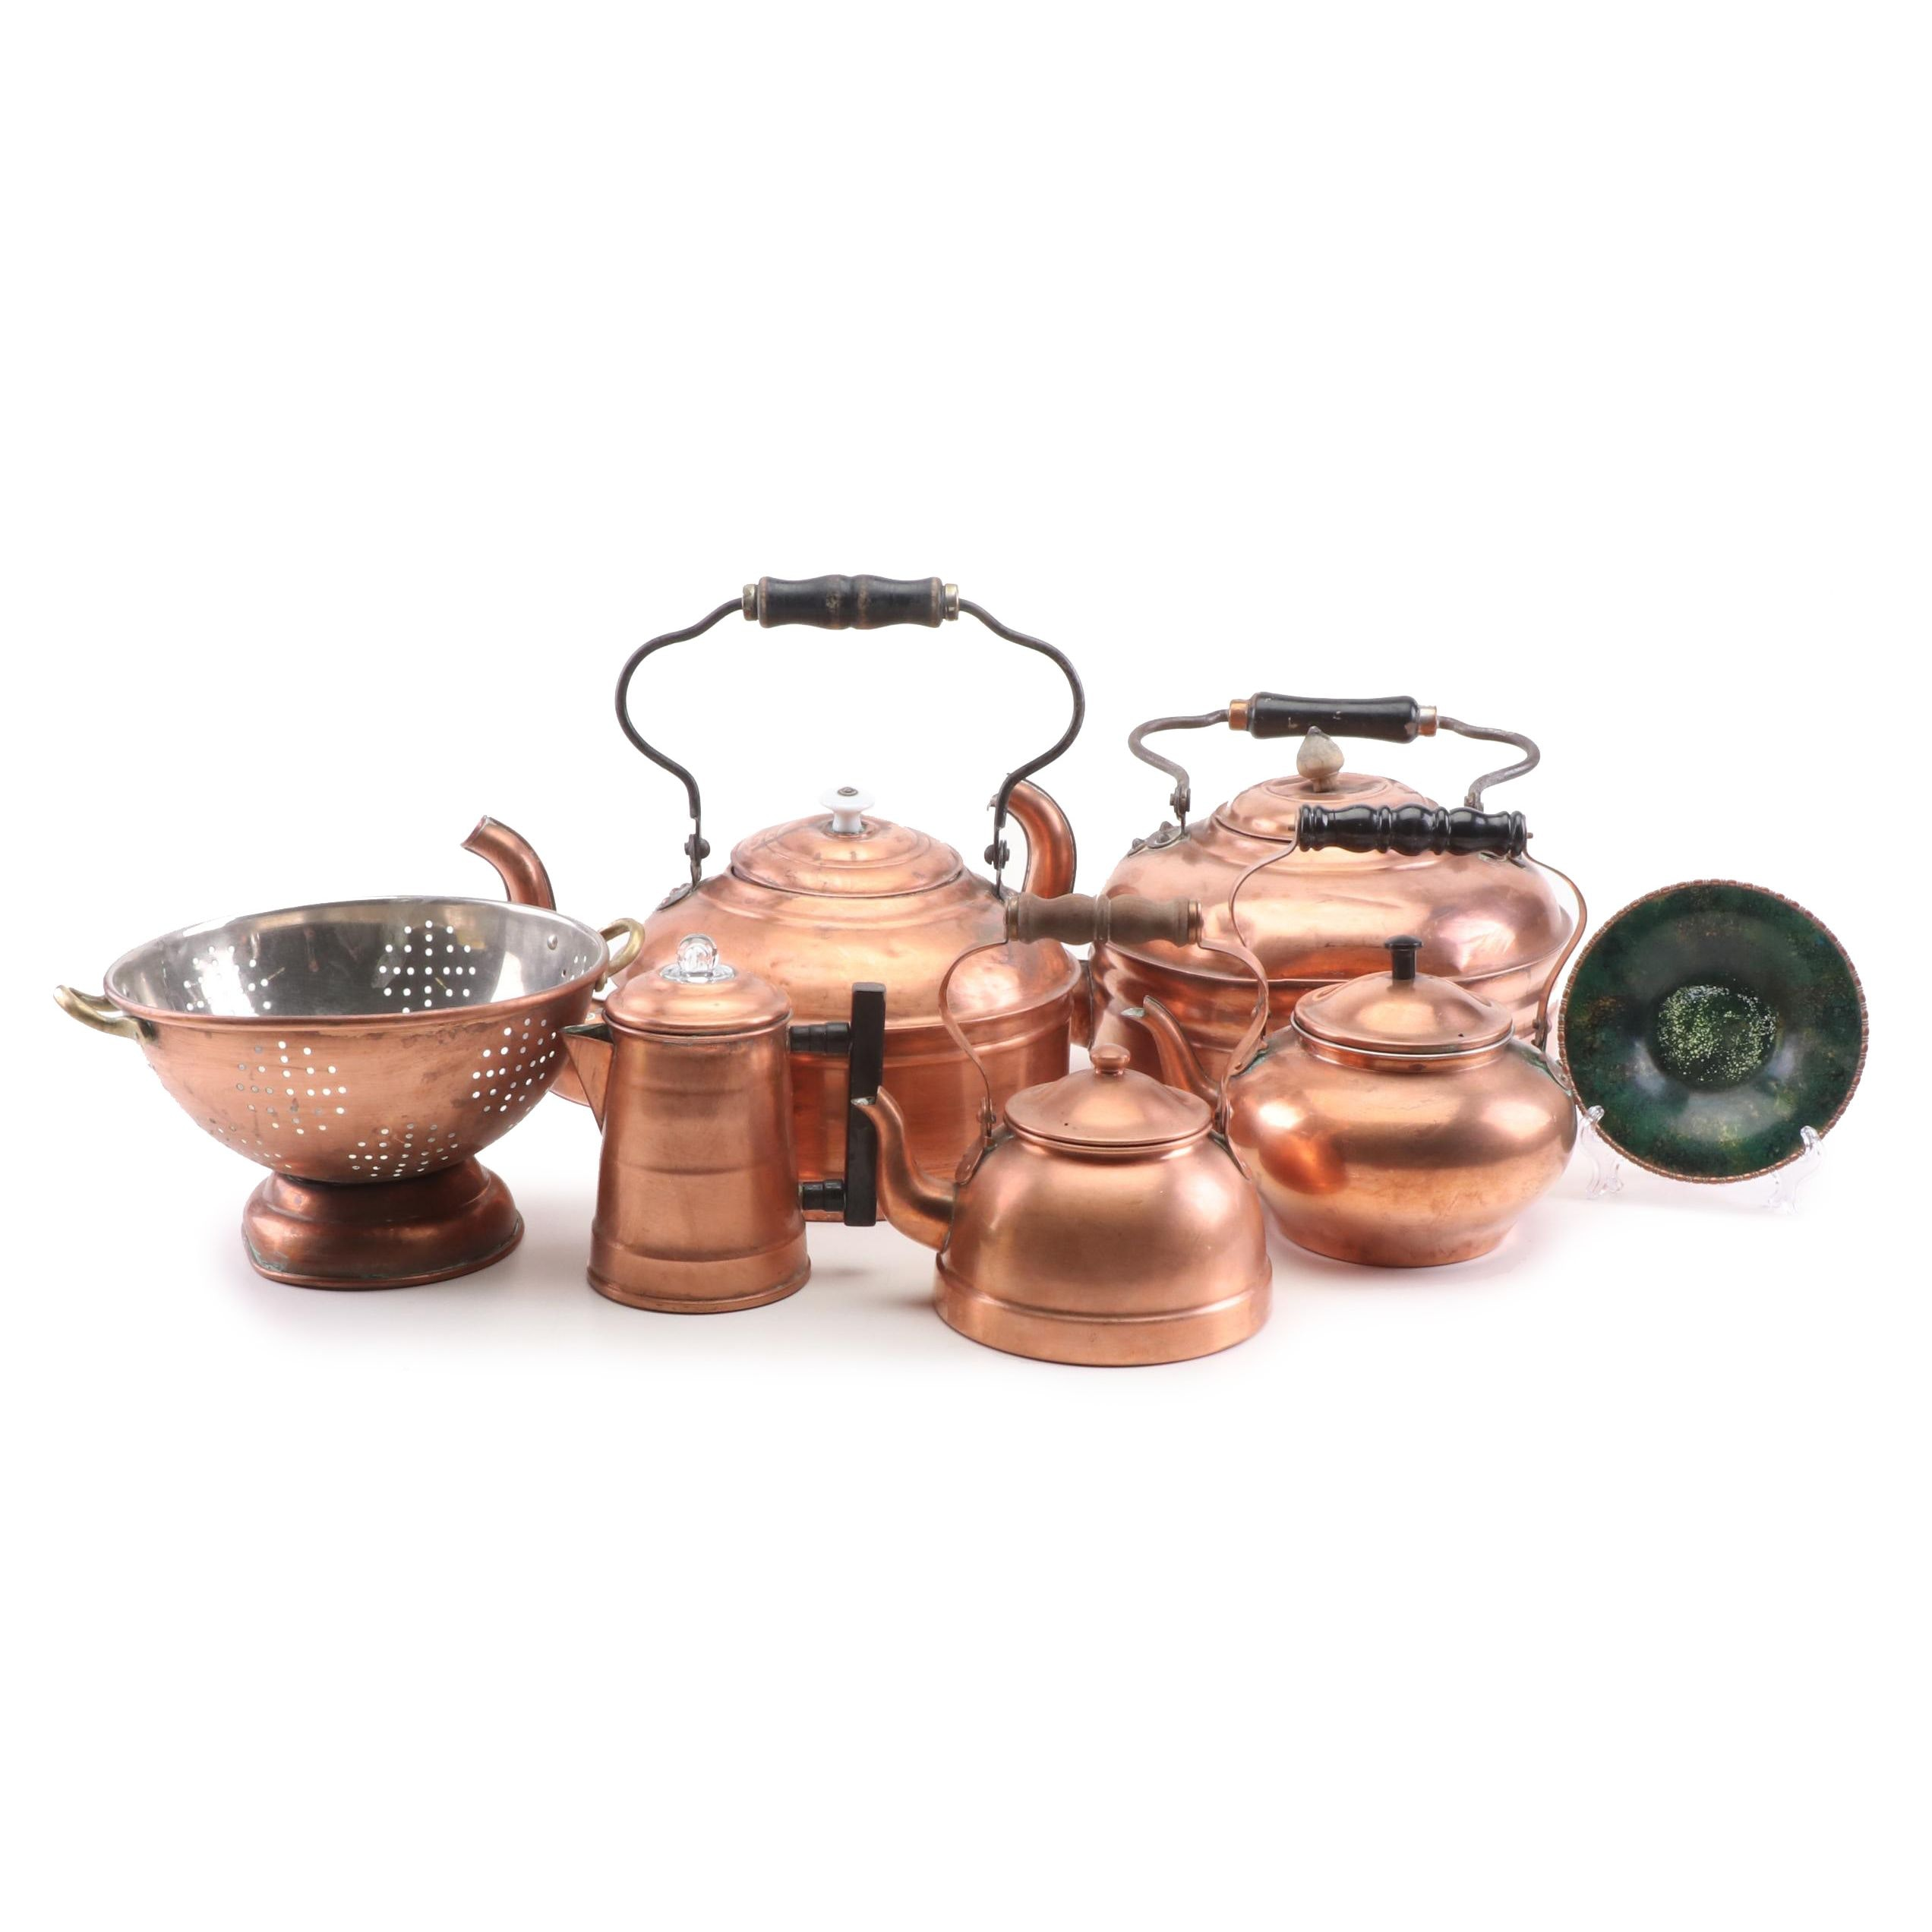 Copper Tea Kettles, Colander, and Decorative Plate